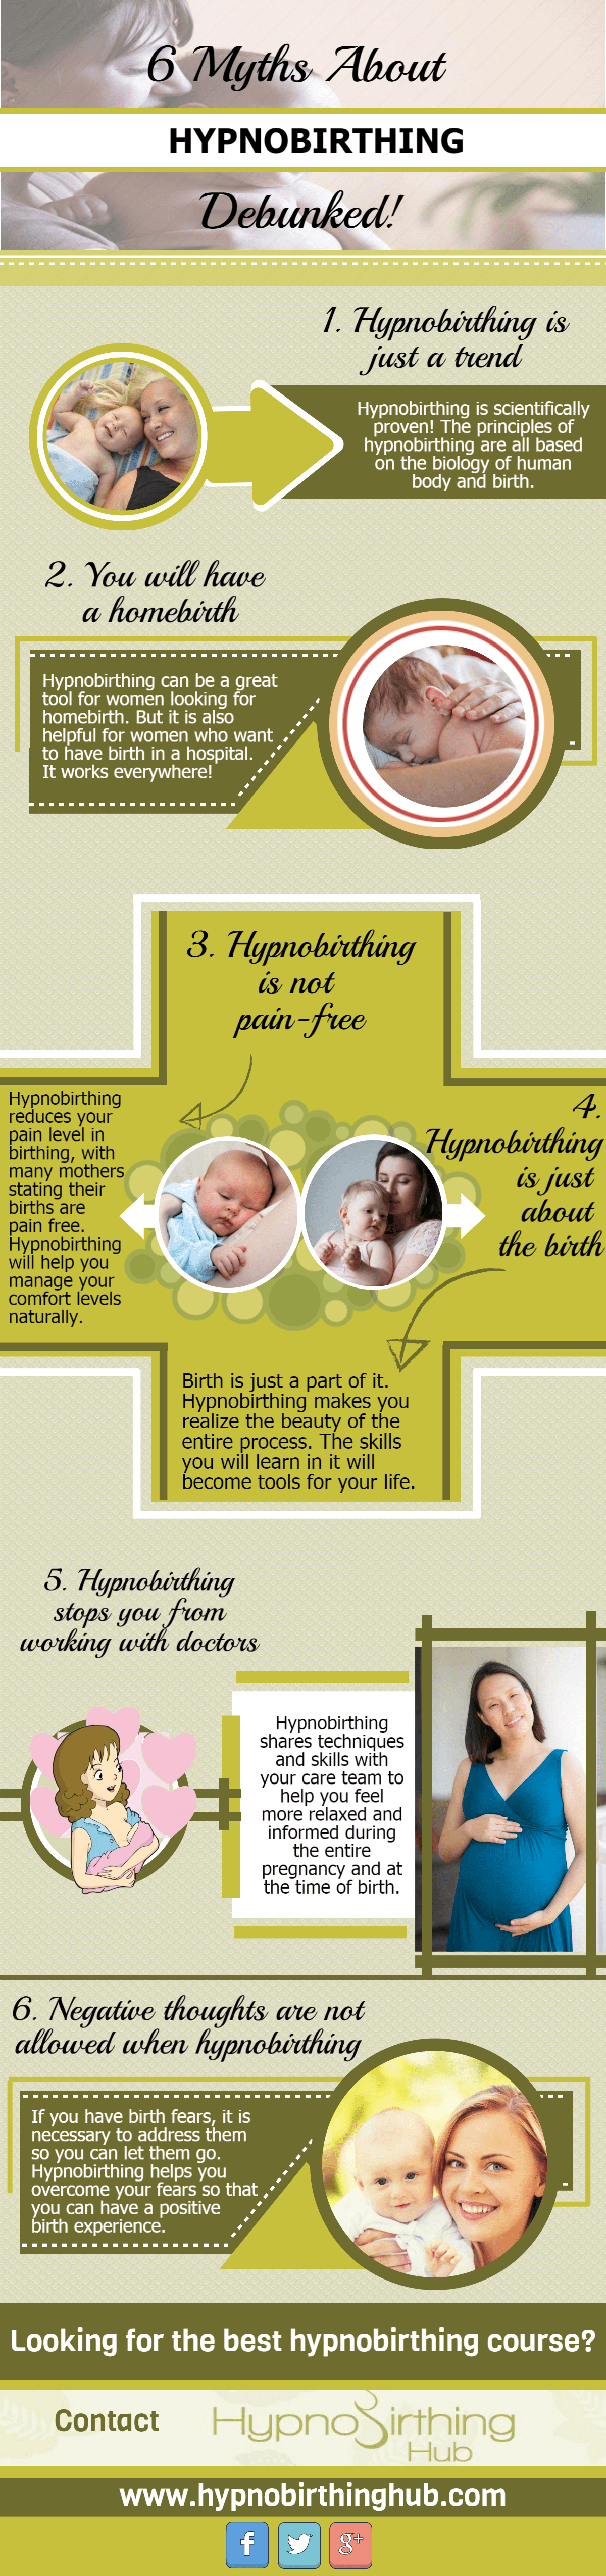 6 Myths About Hypnobirthing Debunked Infographic